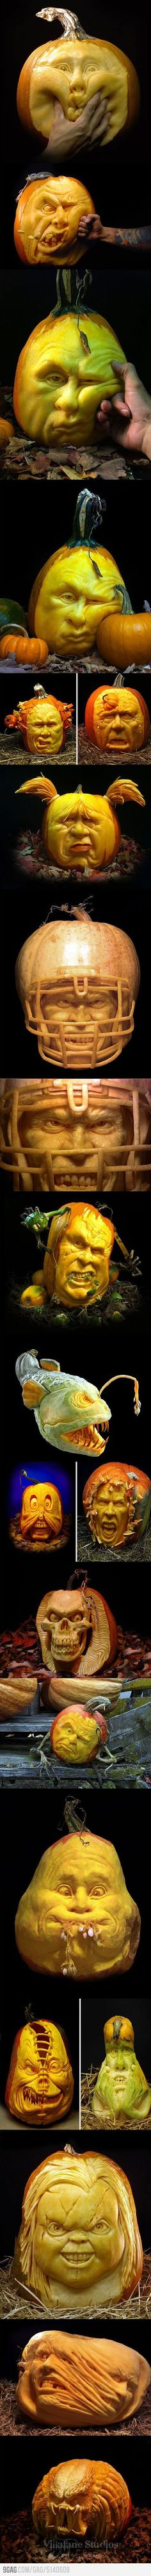 Creepily detailed jack-o-lanterns